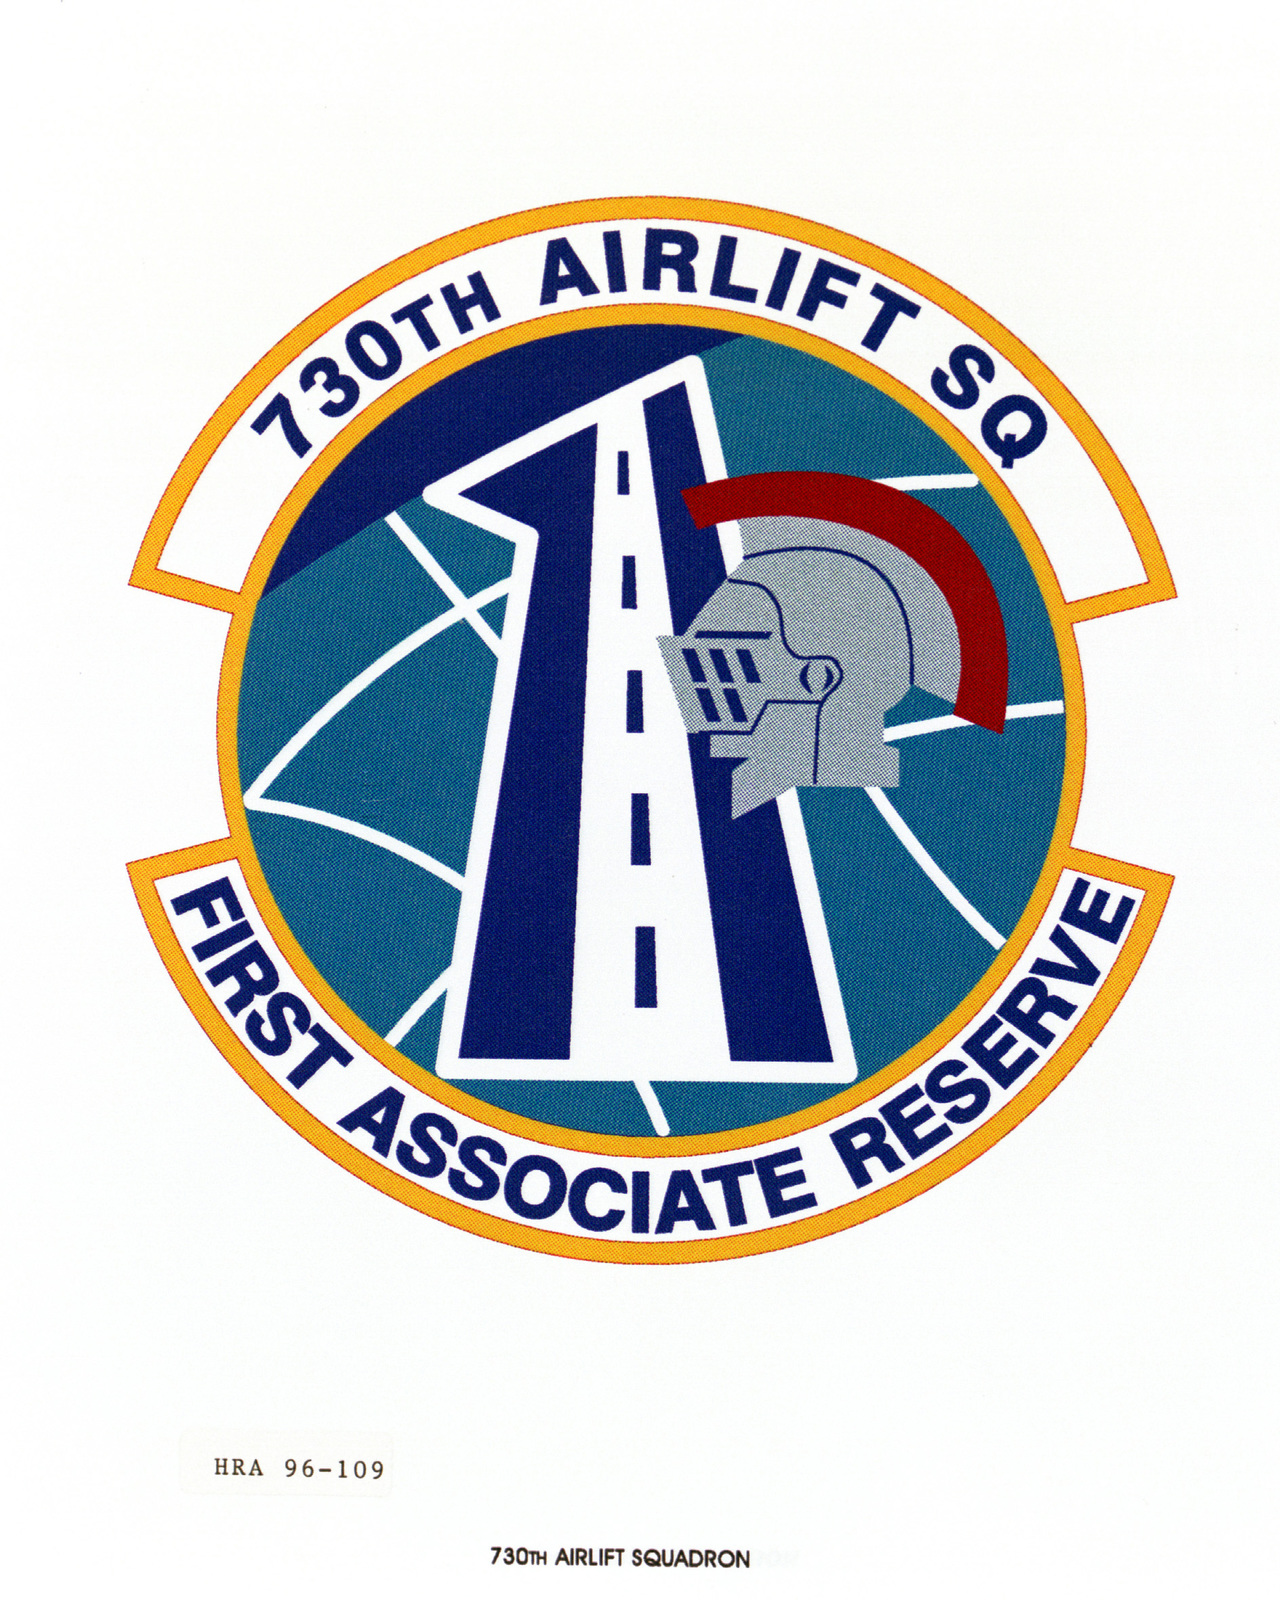 Air Force Organizational Emblem. 730th Airlift Squadron Exact Date Shot Unknown